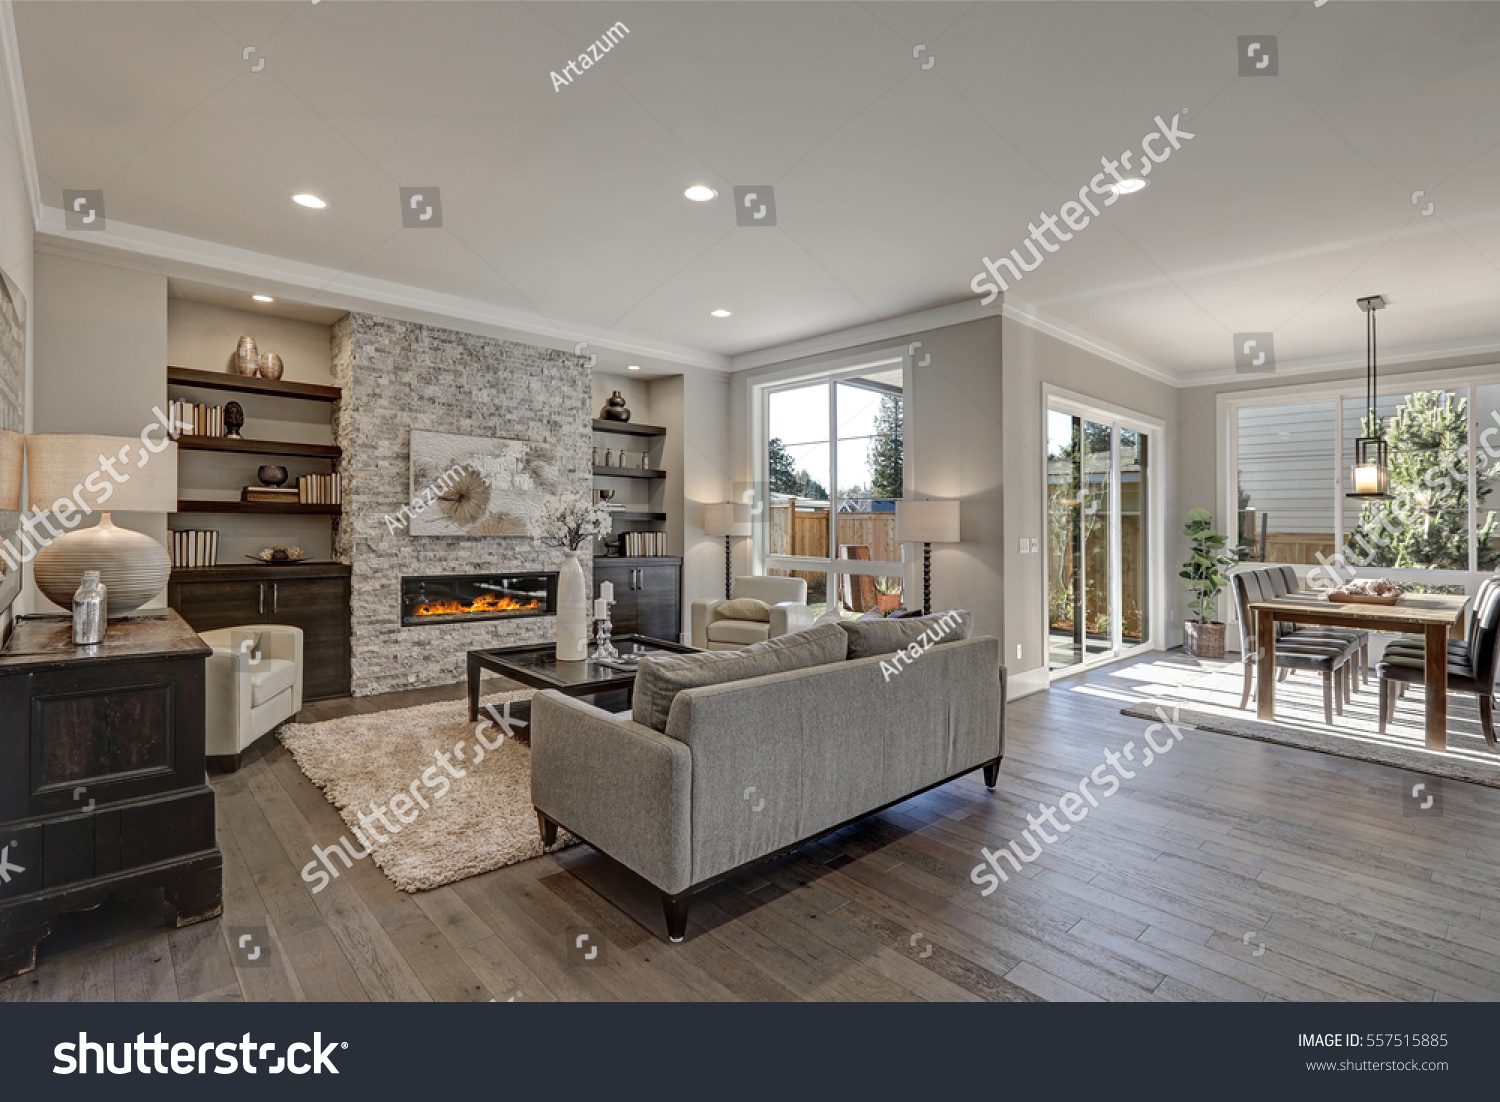 Living room interior in gray and brown colors features gray sofa atop dark hardwood floors facing stone fireplace with built-in shelves. Northwest, USA  #557515885